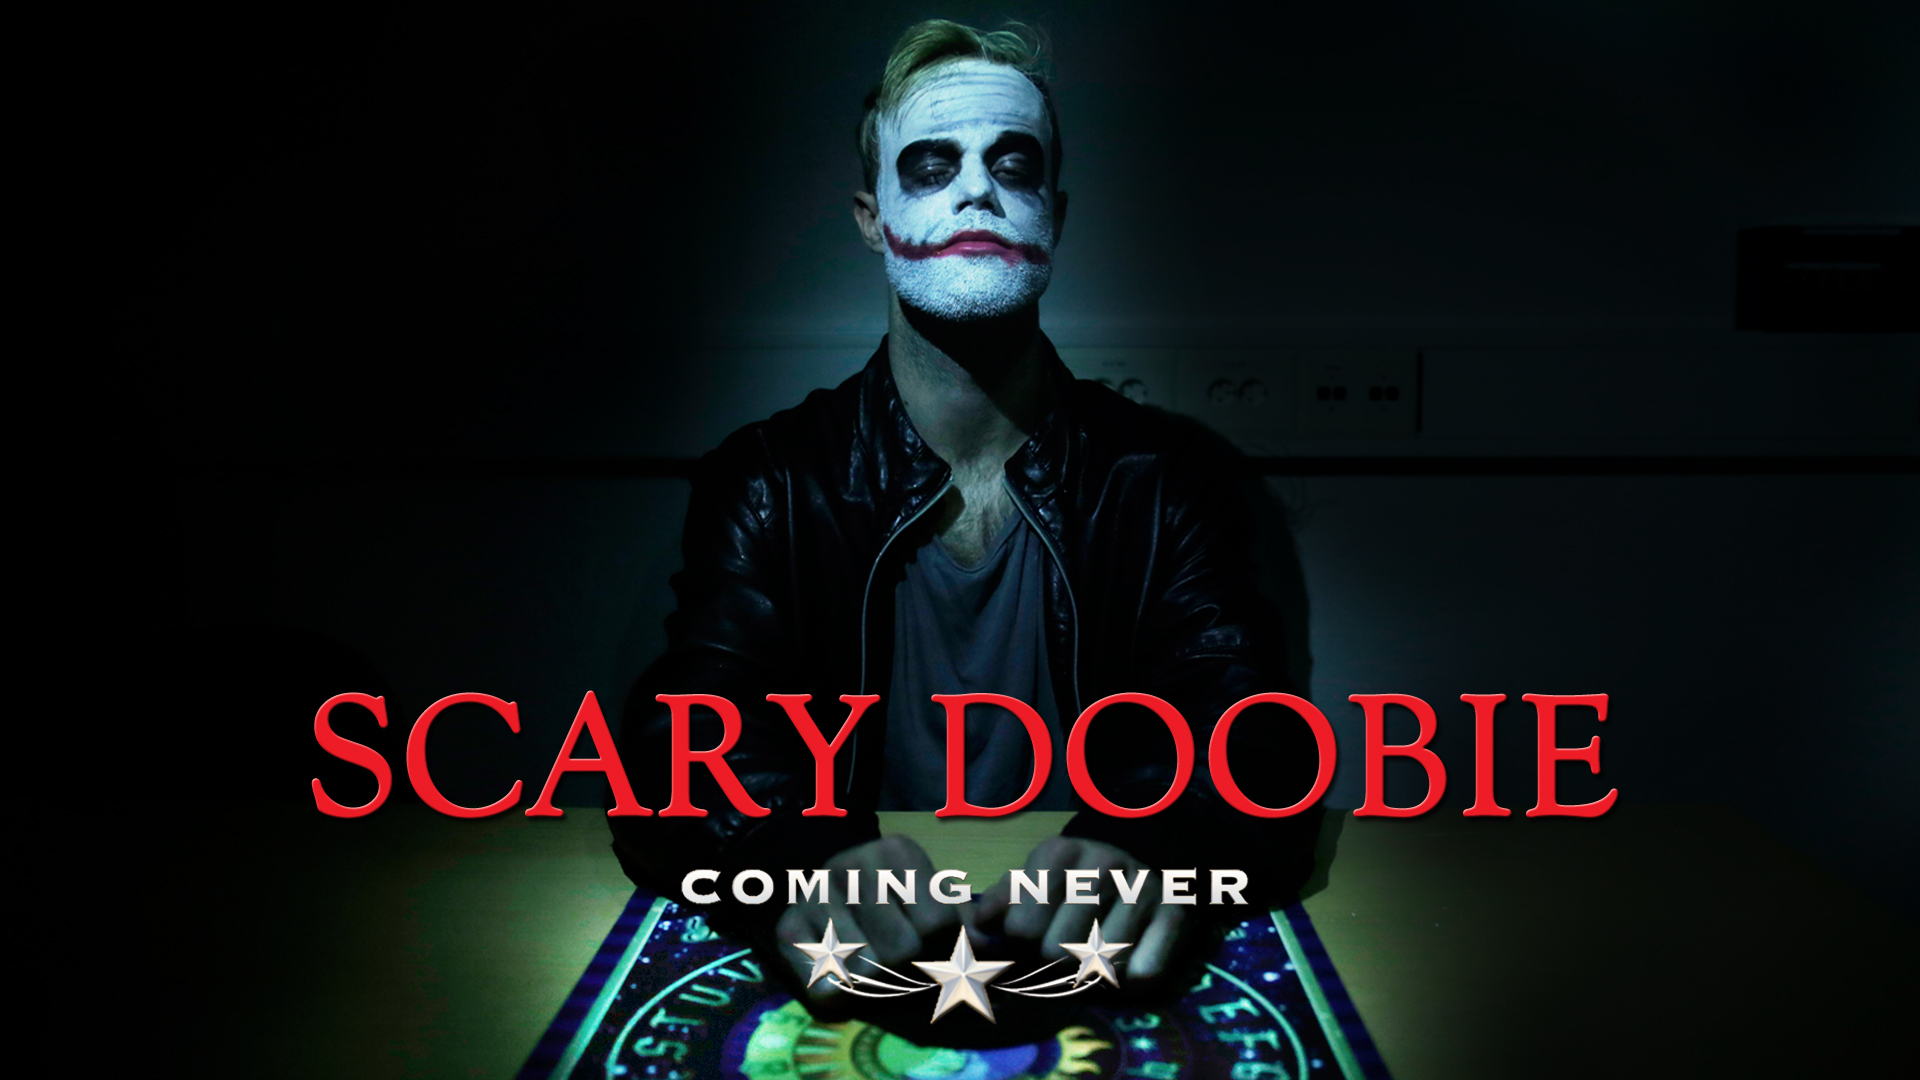 Coming never: Scary doobie